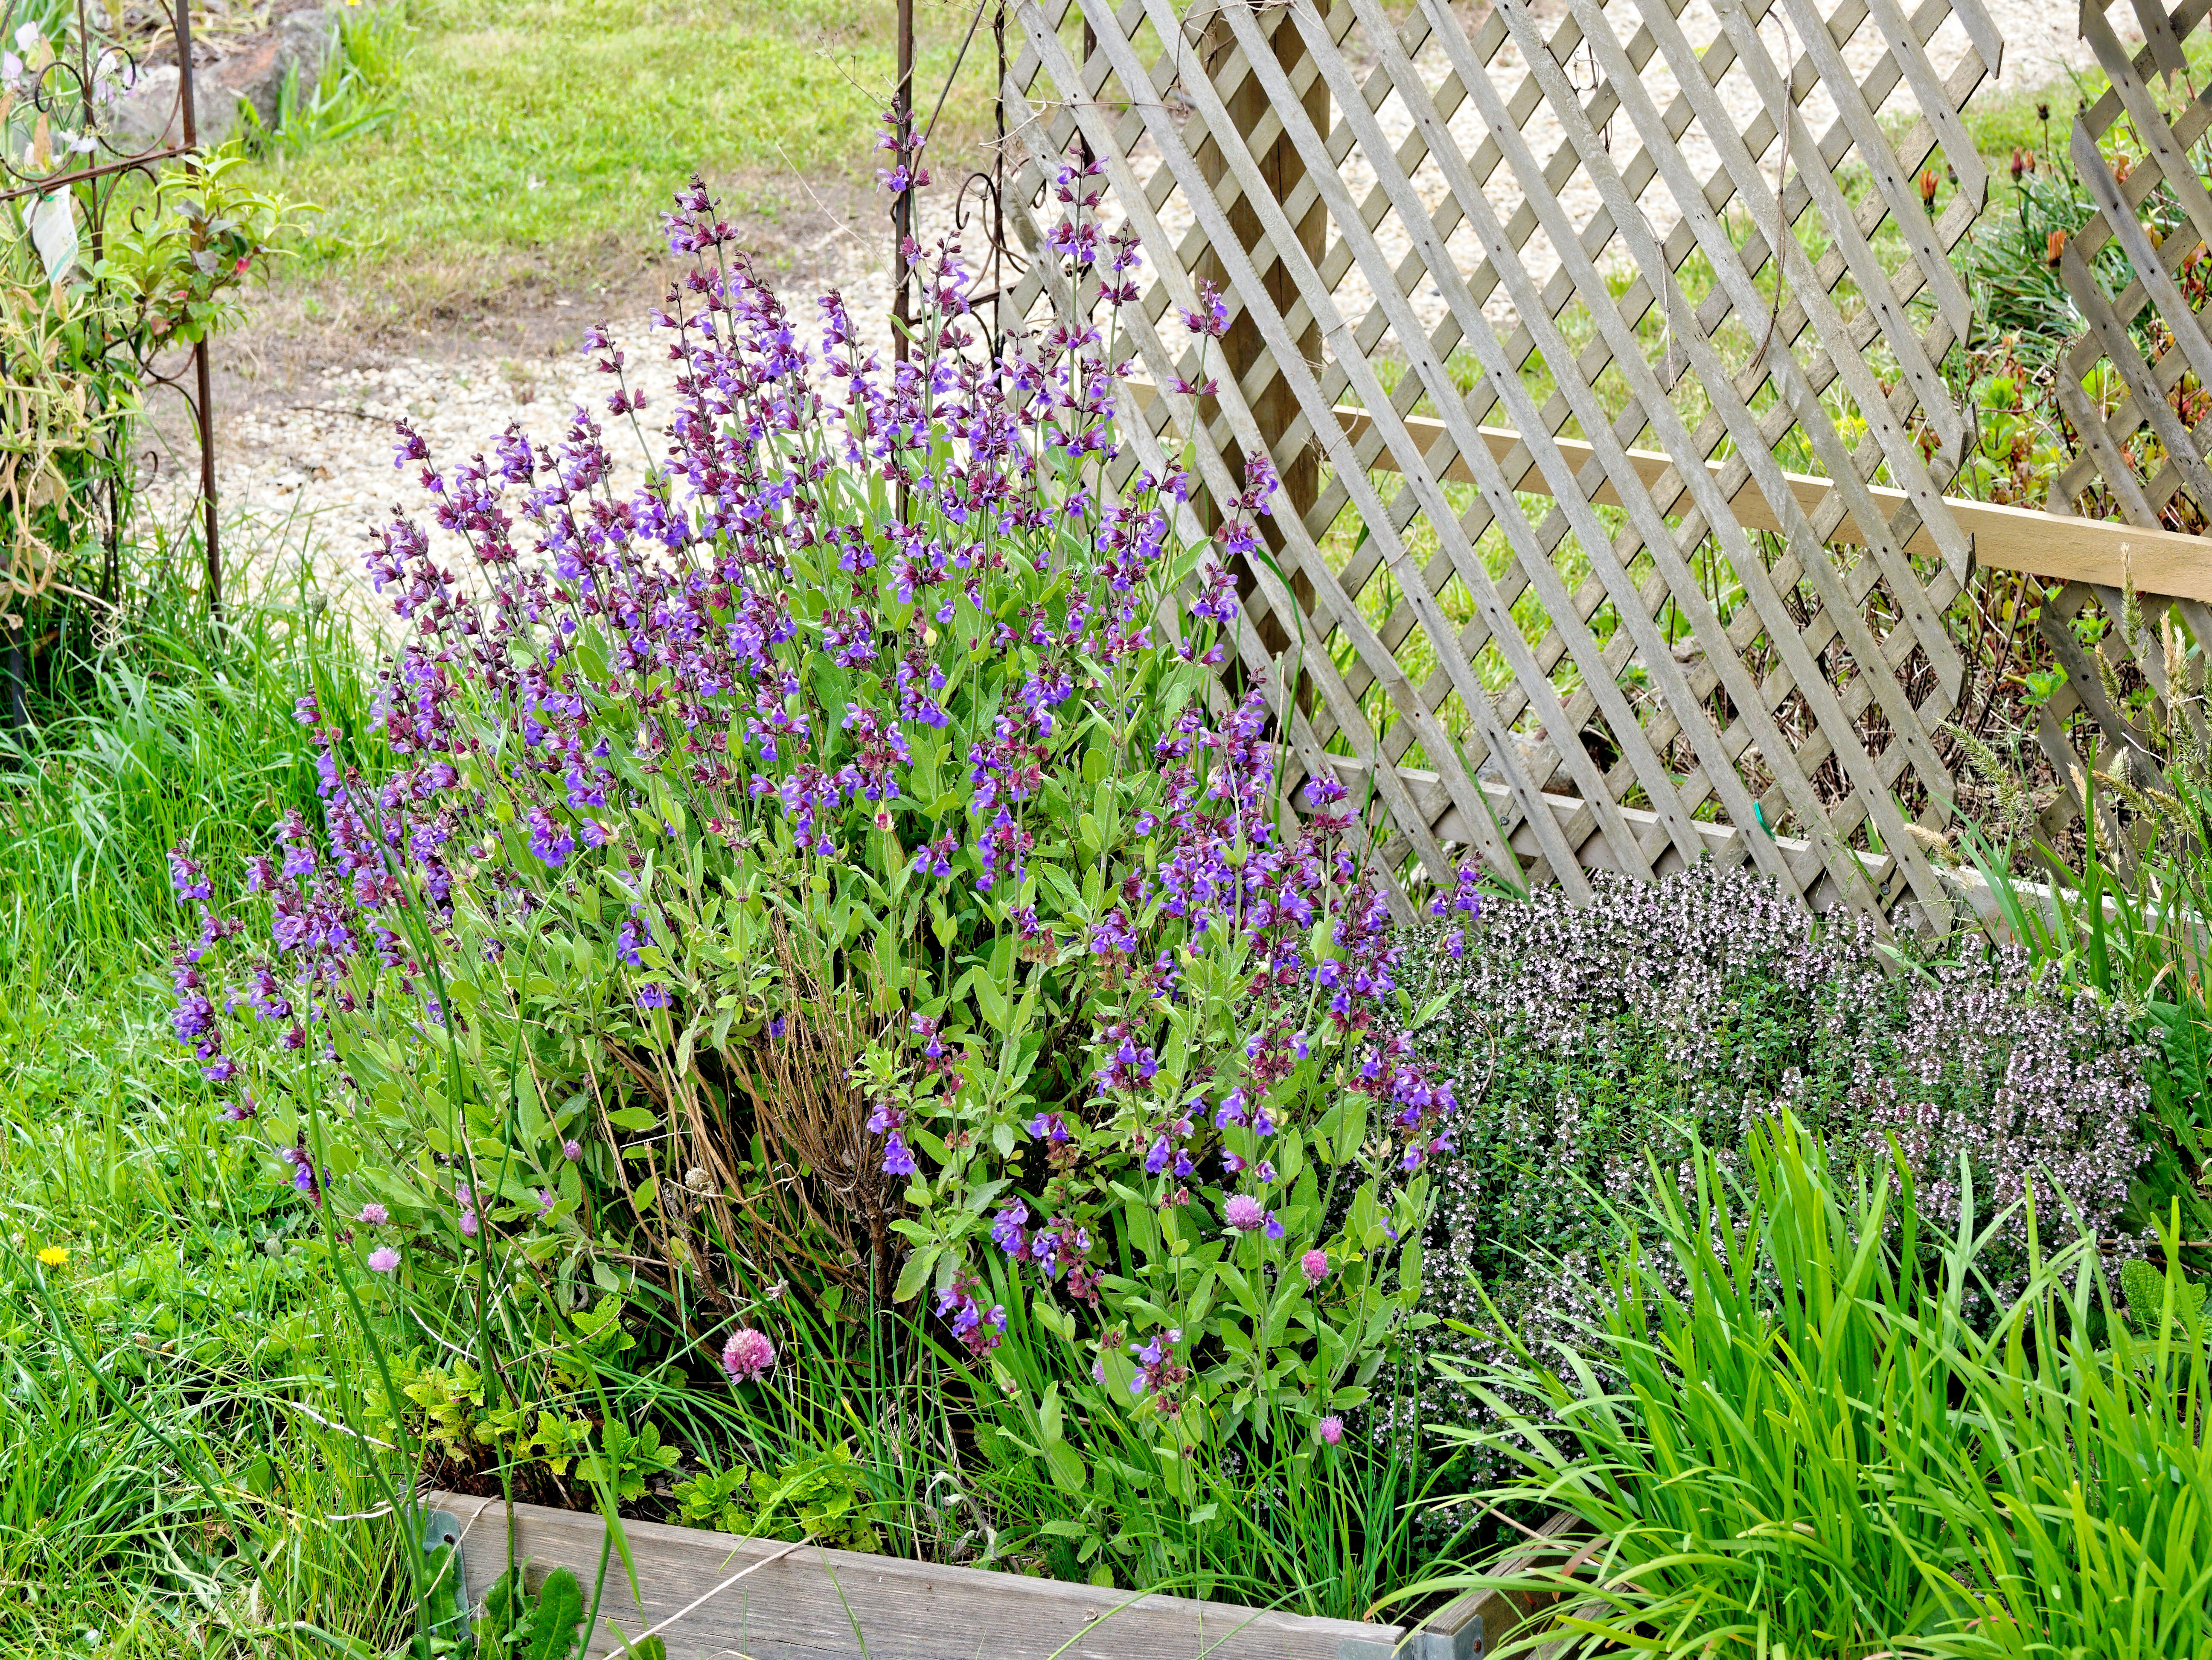 This should be Sage-thyme.jpeg.  Is it missing?